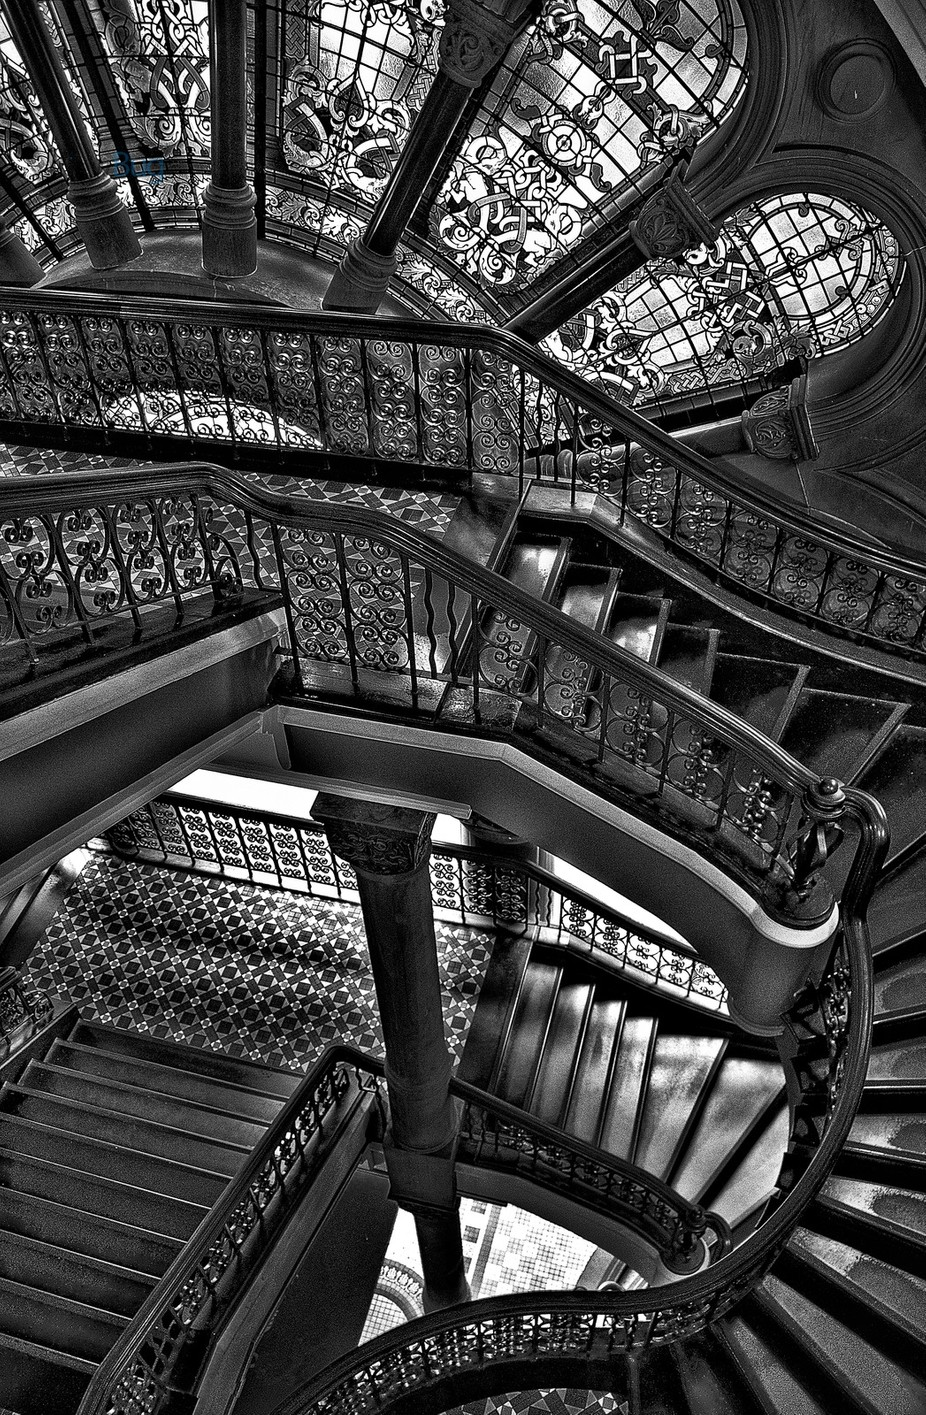 Old Style Workmanship - Queen Victoria Building, Sydney by philipjohnson - Awesomeness In Black And White Photo Contest